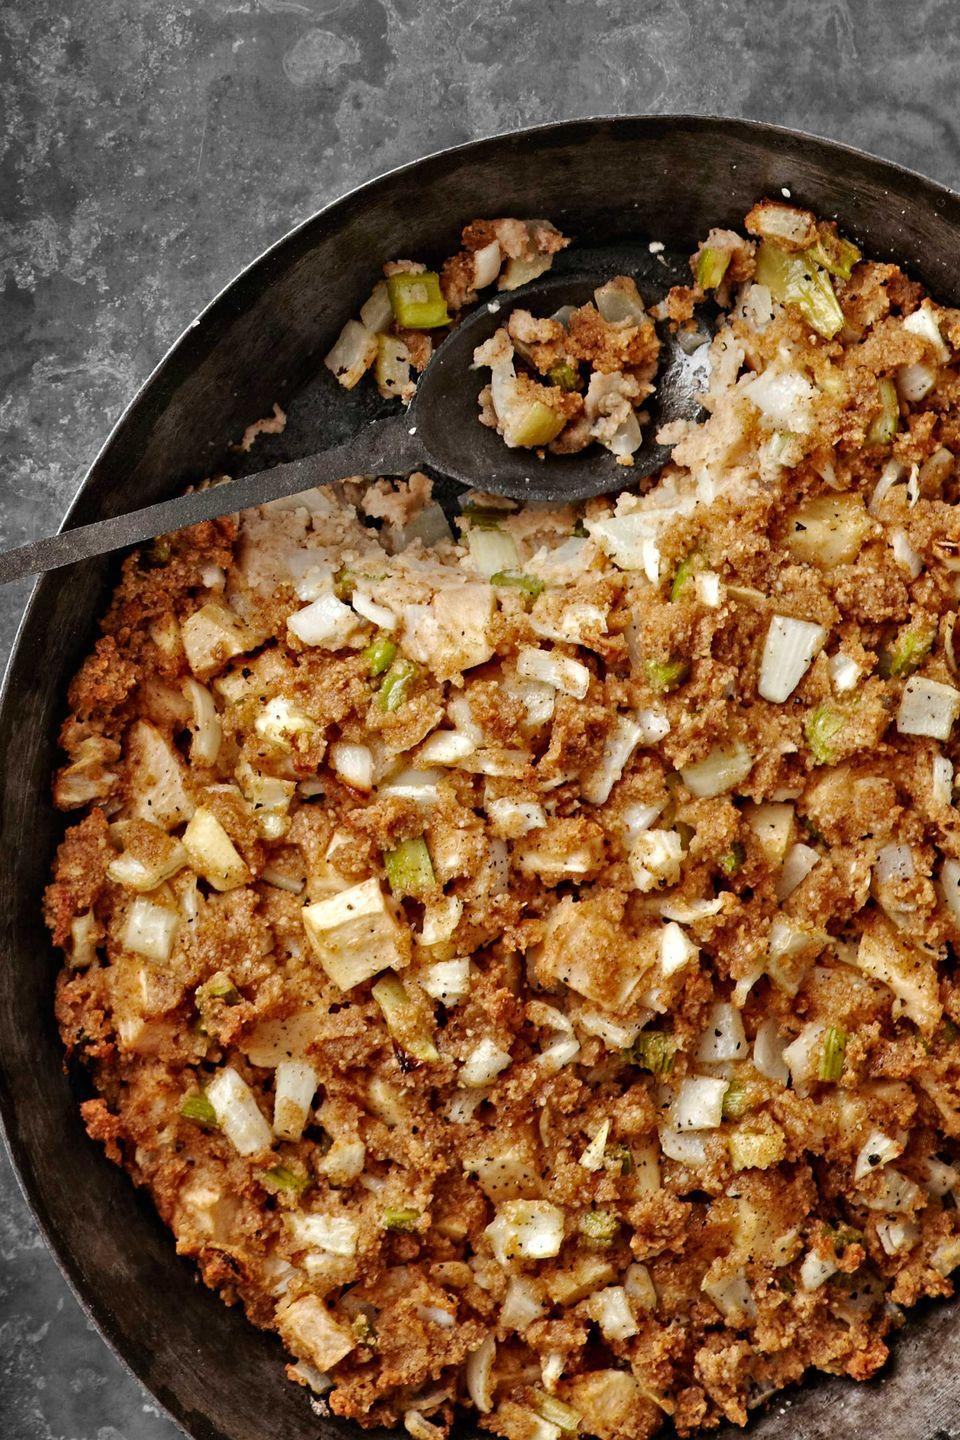 "<p class=""imageContent"">Matzo meal and chicken broth are added together slowly to ensure this stuffing is deliciously moist. Apples and cinnamon impart a surprising hint of sweetness.<strong><br></strong></p><p class=""imageContent""><strong><a href=""https://www.countryliving.com/food-drinks/recipes/a4230/edythe-newmans-matzo-stuffing-recipe-clv1112/"" rel=""nofollow noopener"" target=""_blank"" data-ylk=""slk:Get the recipe"" class=""link rapid-noclick-resp"">Get the recipe</a>.</strong></p>"